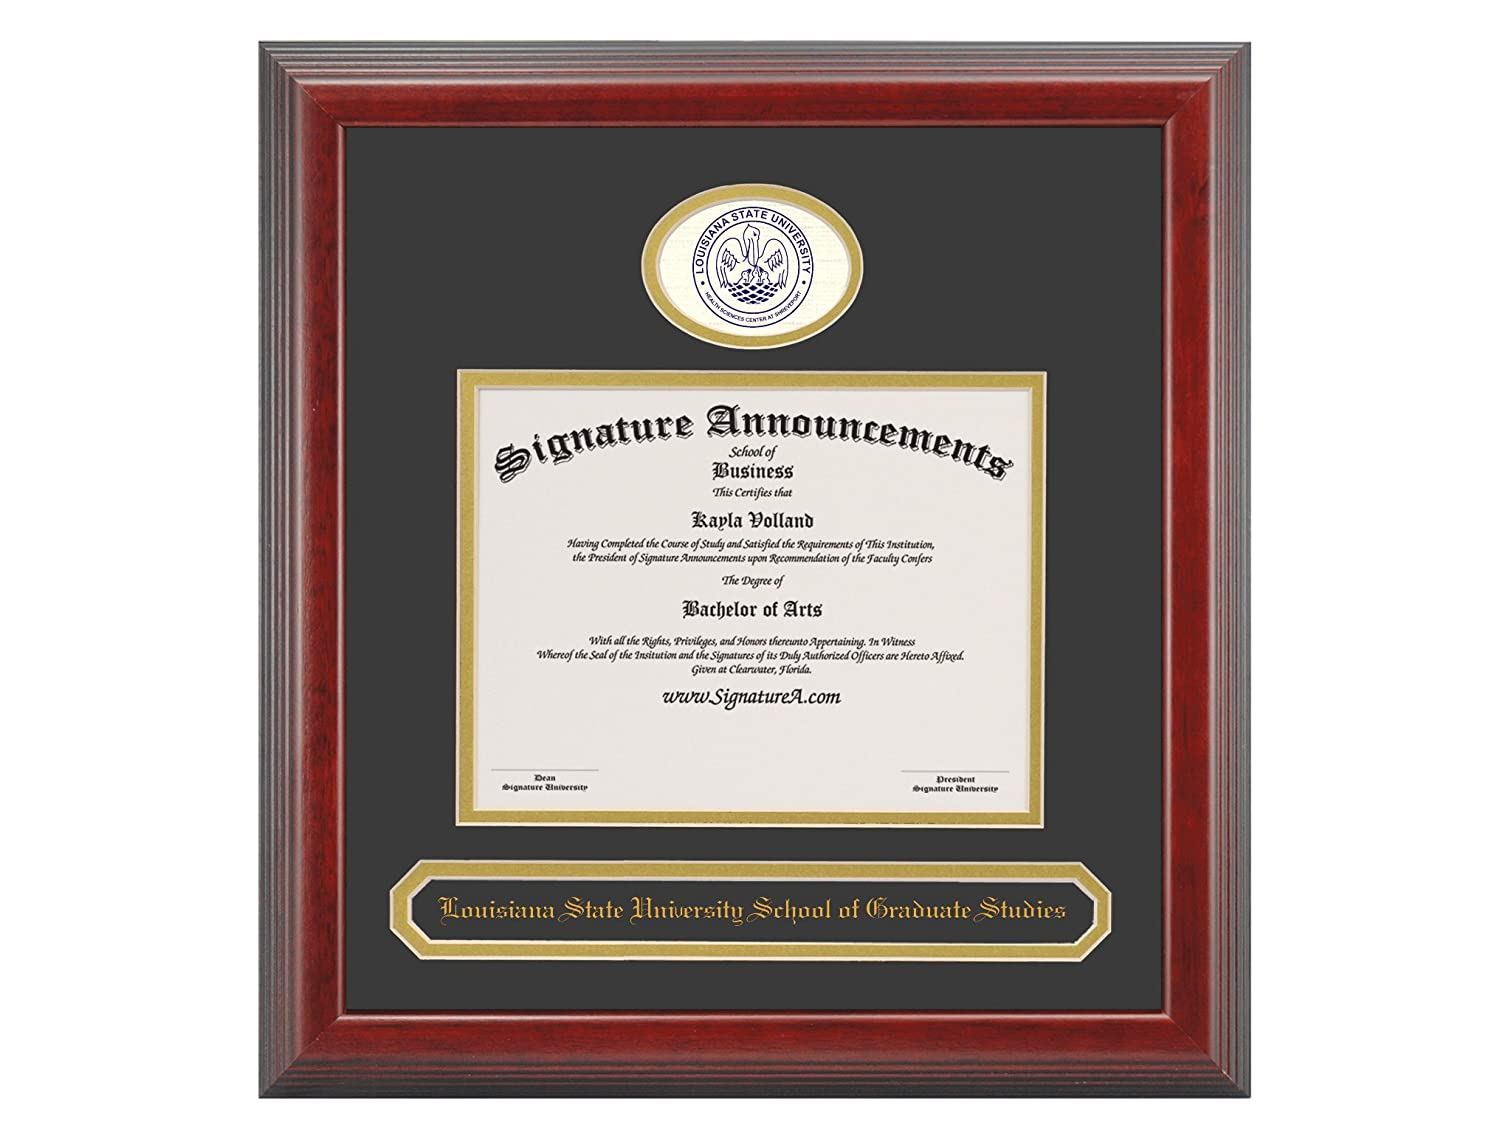 Signature Announcements Louisiana-State-University-School Studies Undergraduate Professional//Doctor Sculpted Foil Seal /& Name Graduation Diploma Frame Cherry 16 x 16